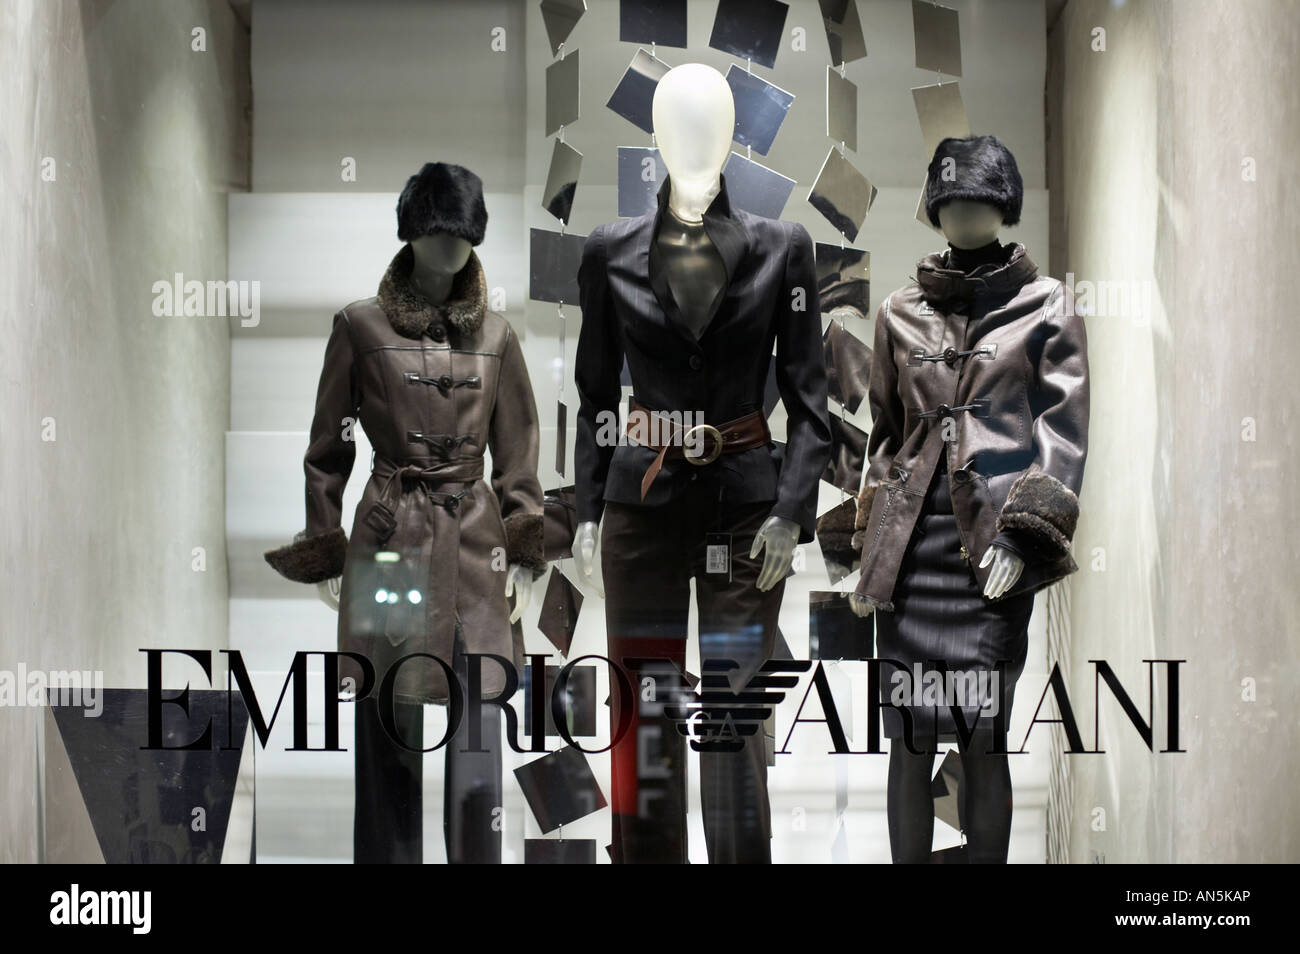 Emporio Armani shop front window in Bond Street London England UK - Stock Image